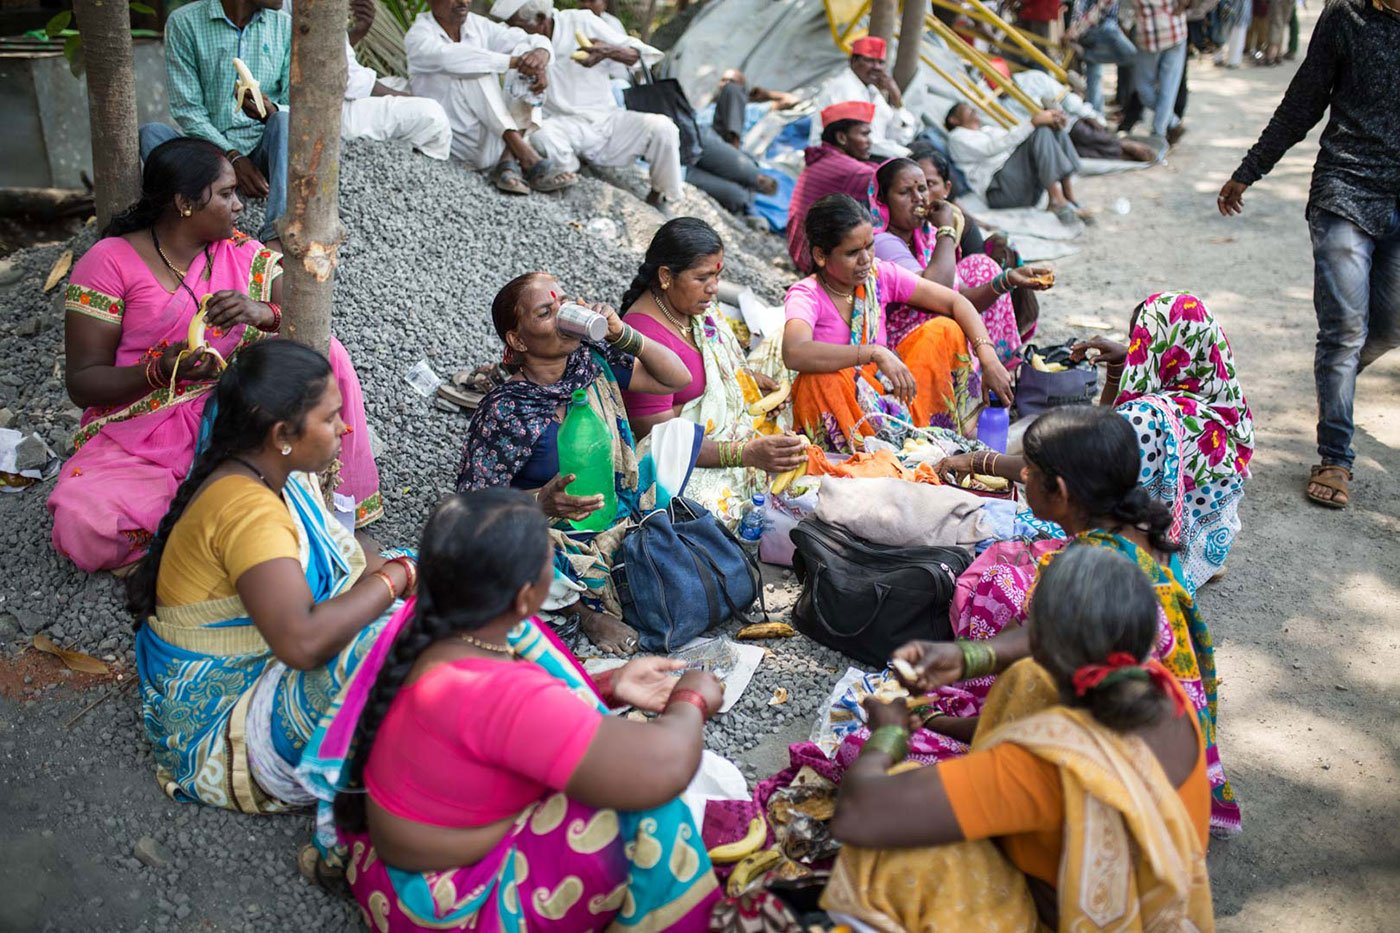 A group of women, including Shantabai Waghmare, 50, eating lunch